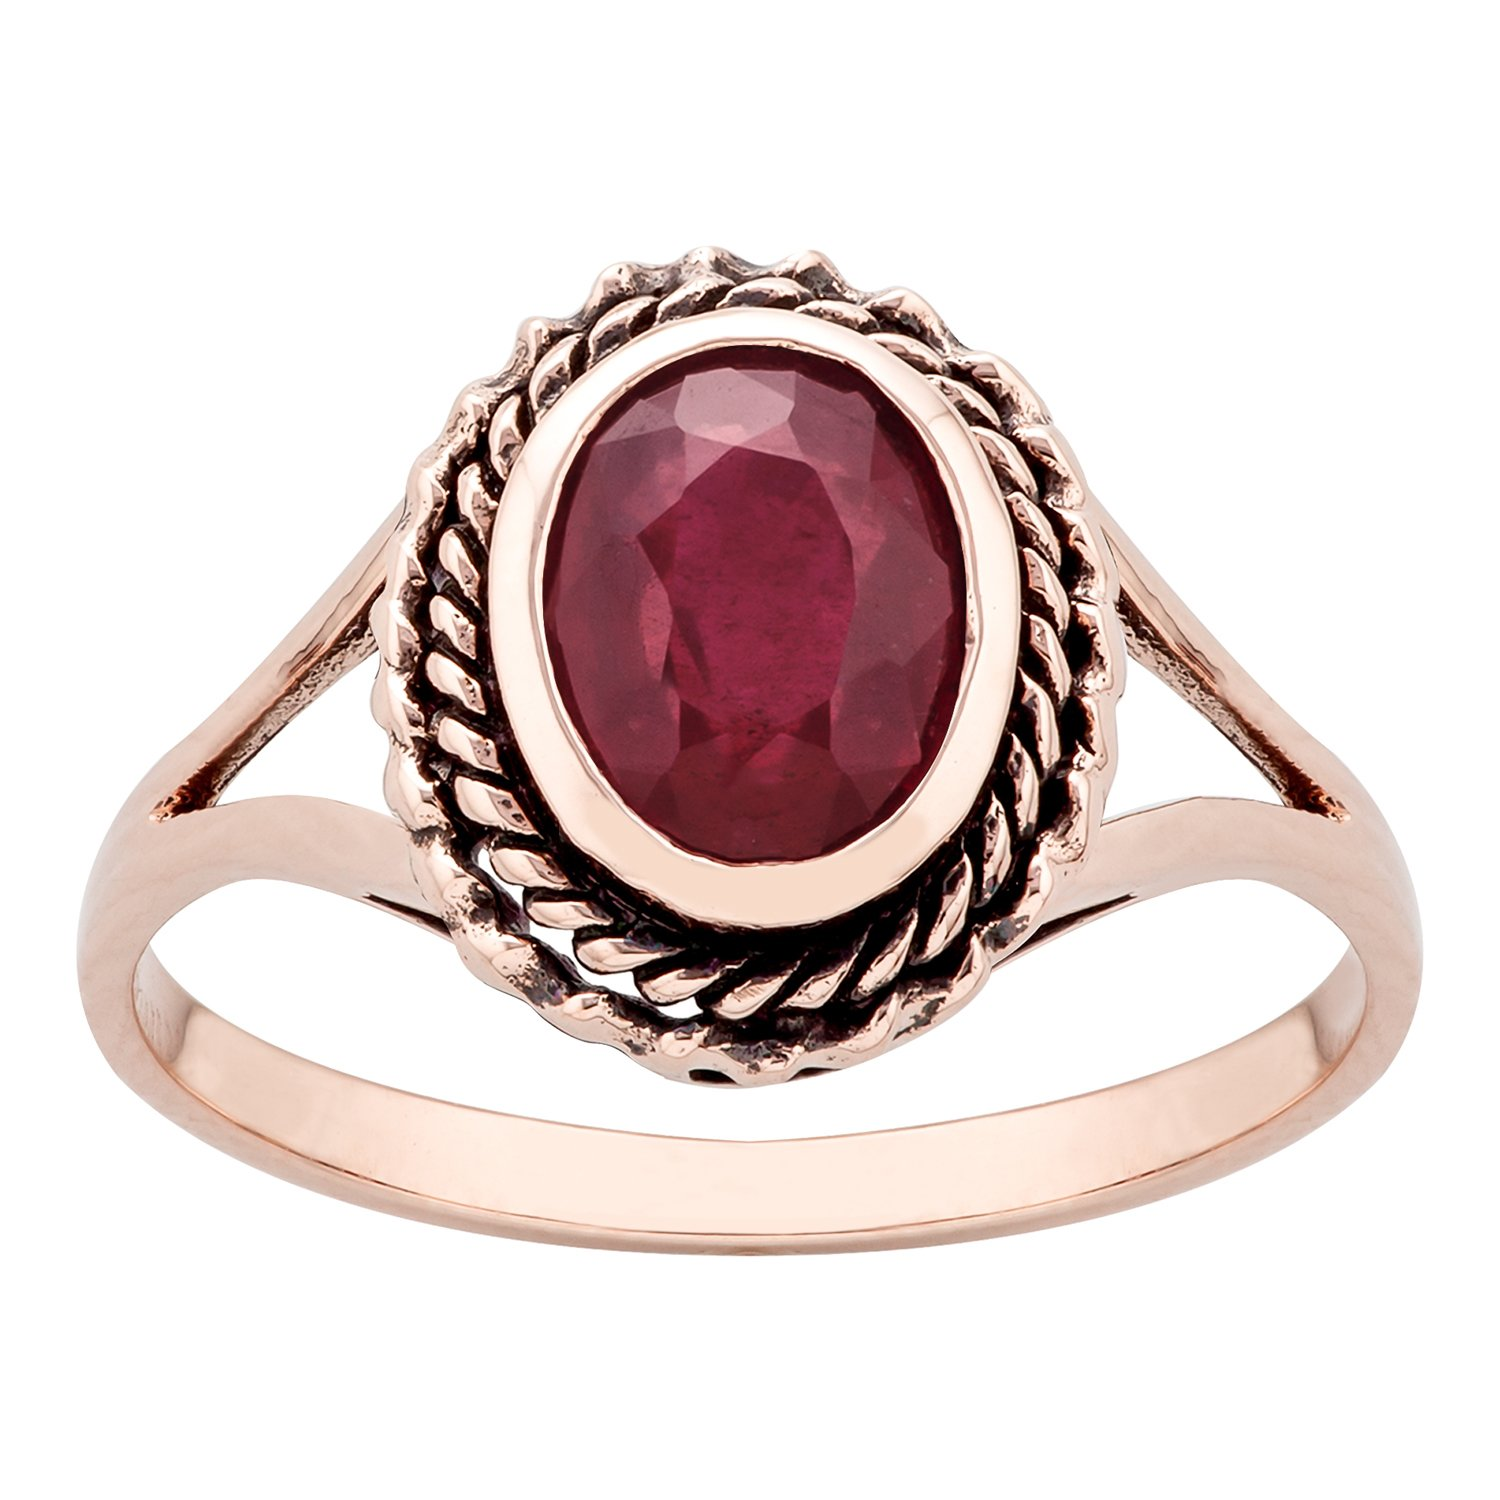 10k Rose Gold Vintage Style Genuine Oval Ruby Split Shank Ring by Instagems